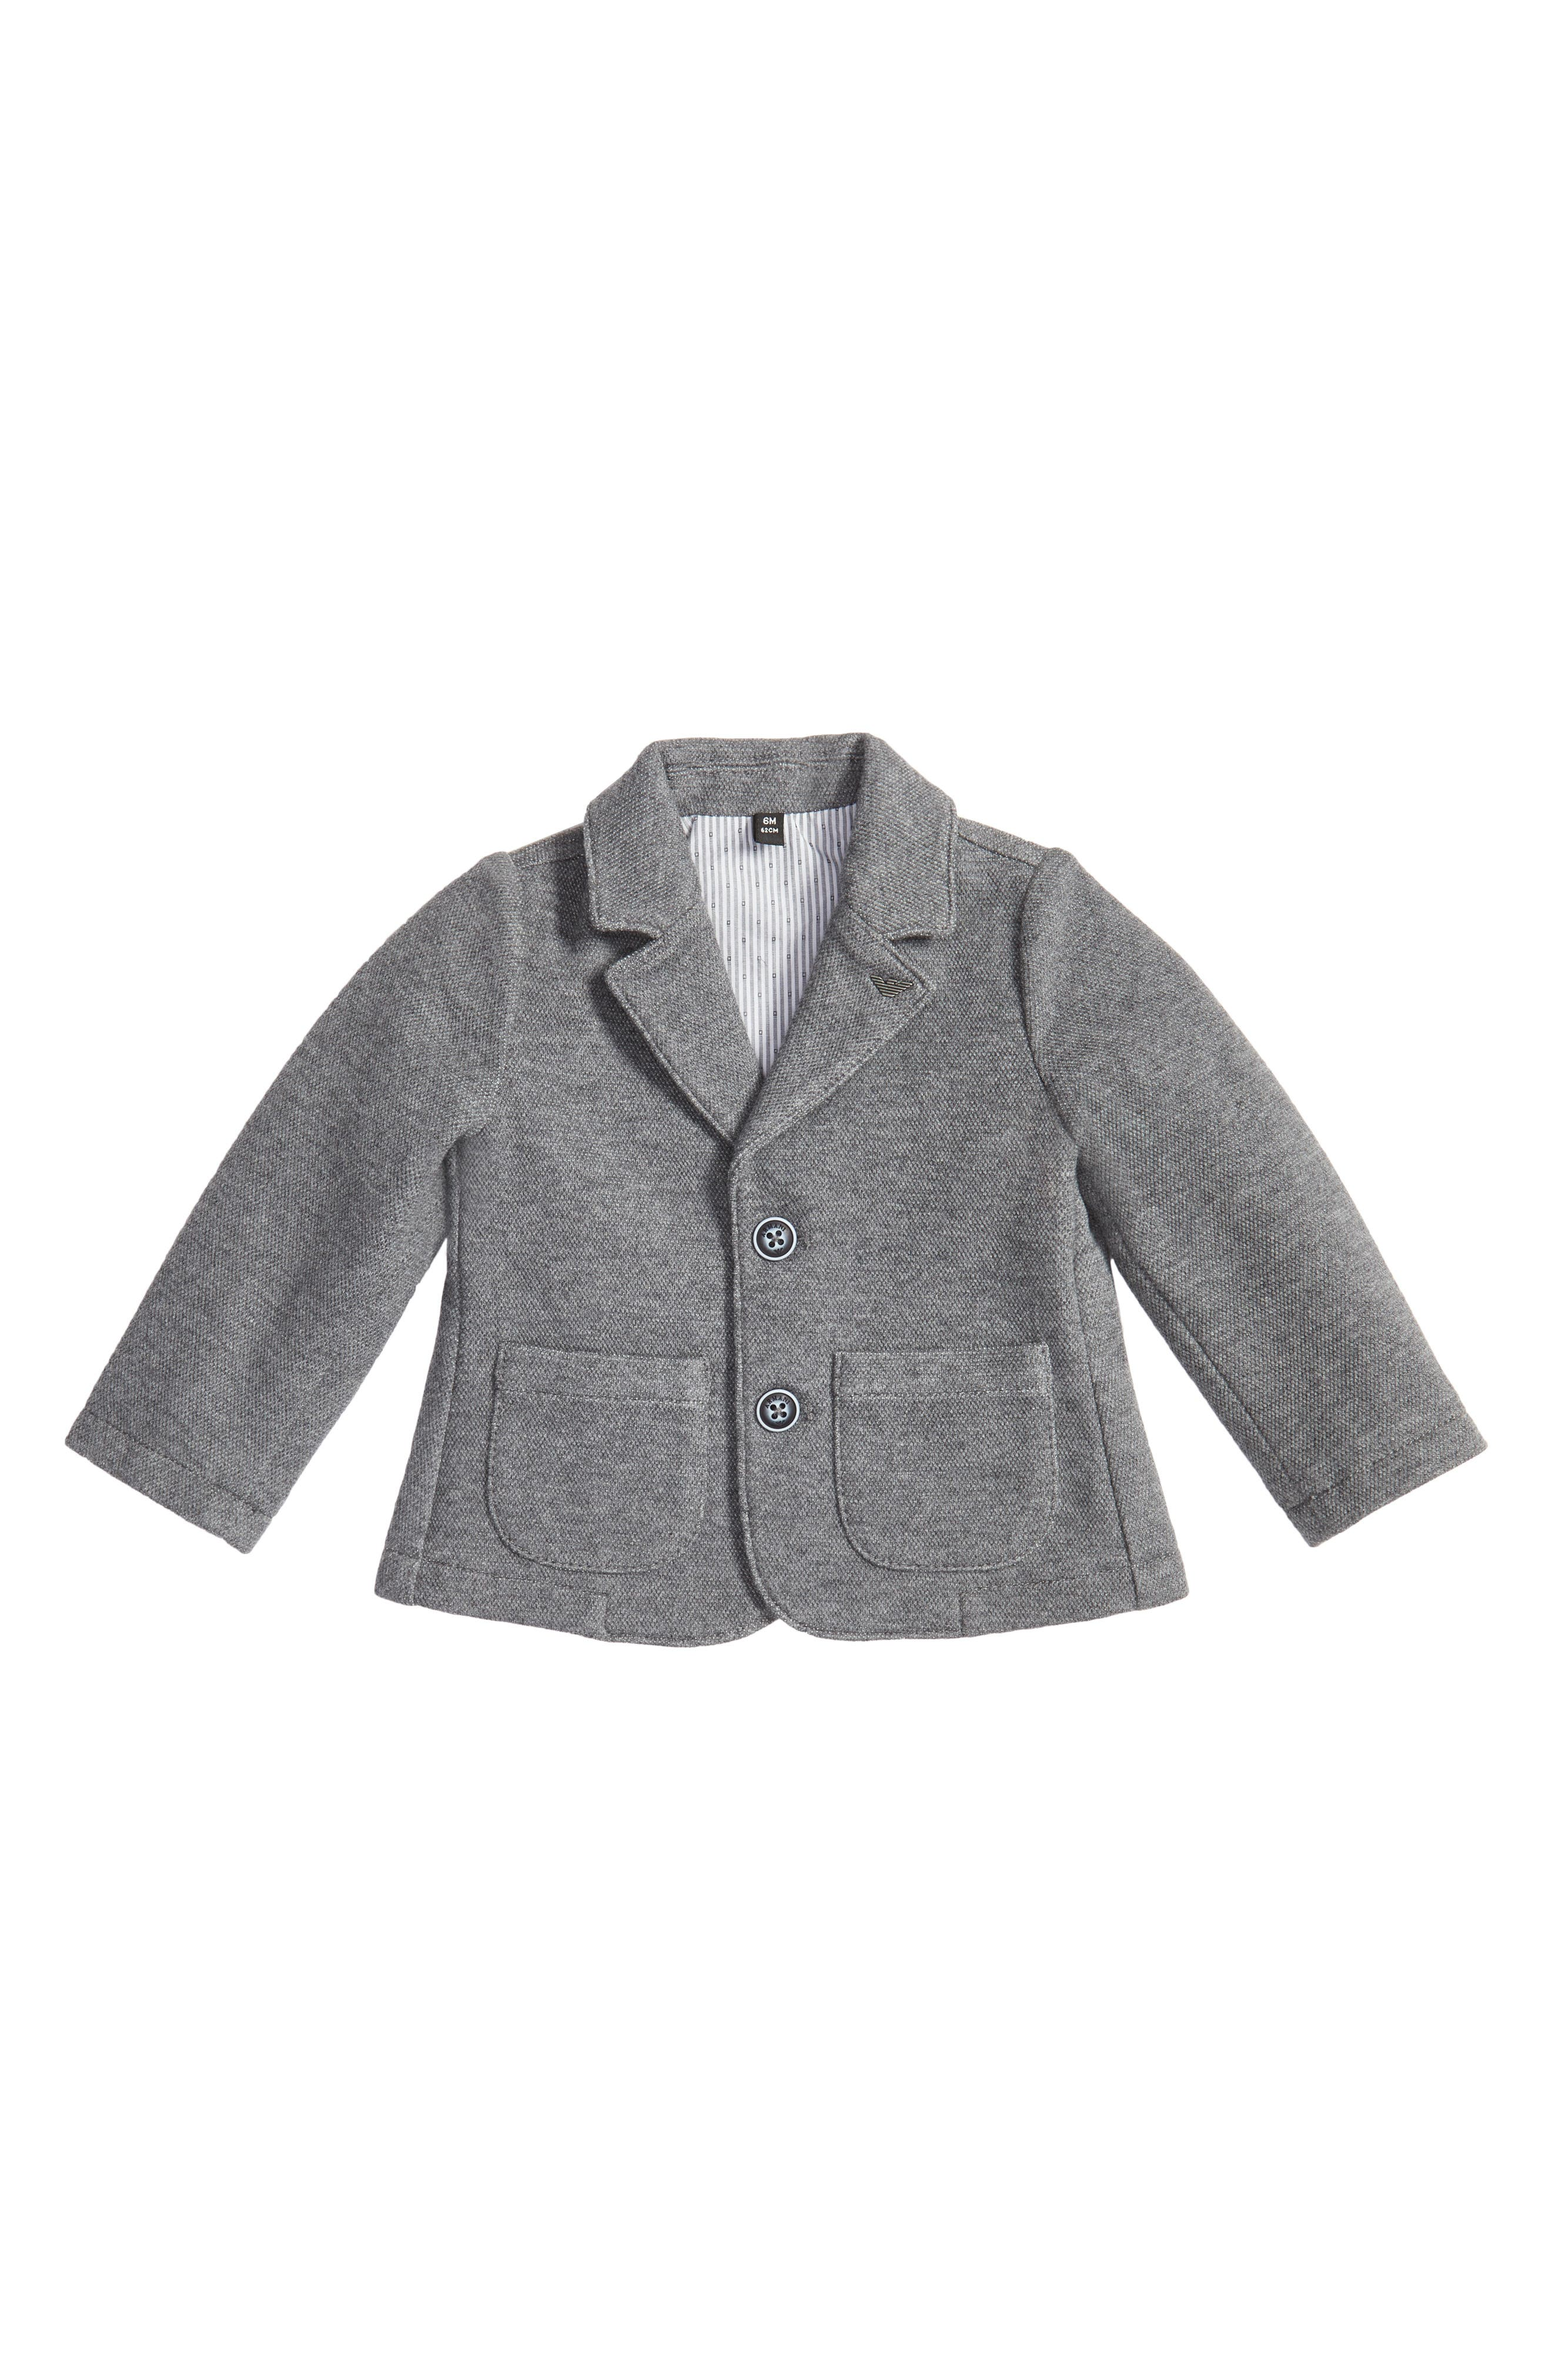 Piqué Knit Blazer,                             Main thumbnail 1, color,                             Grey